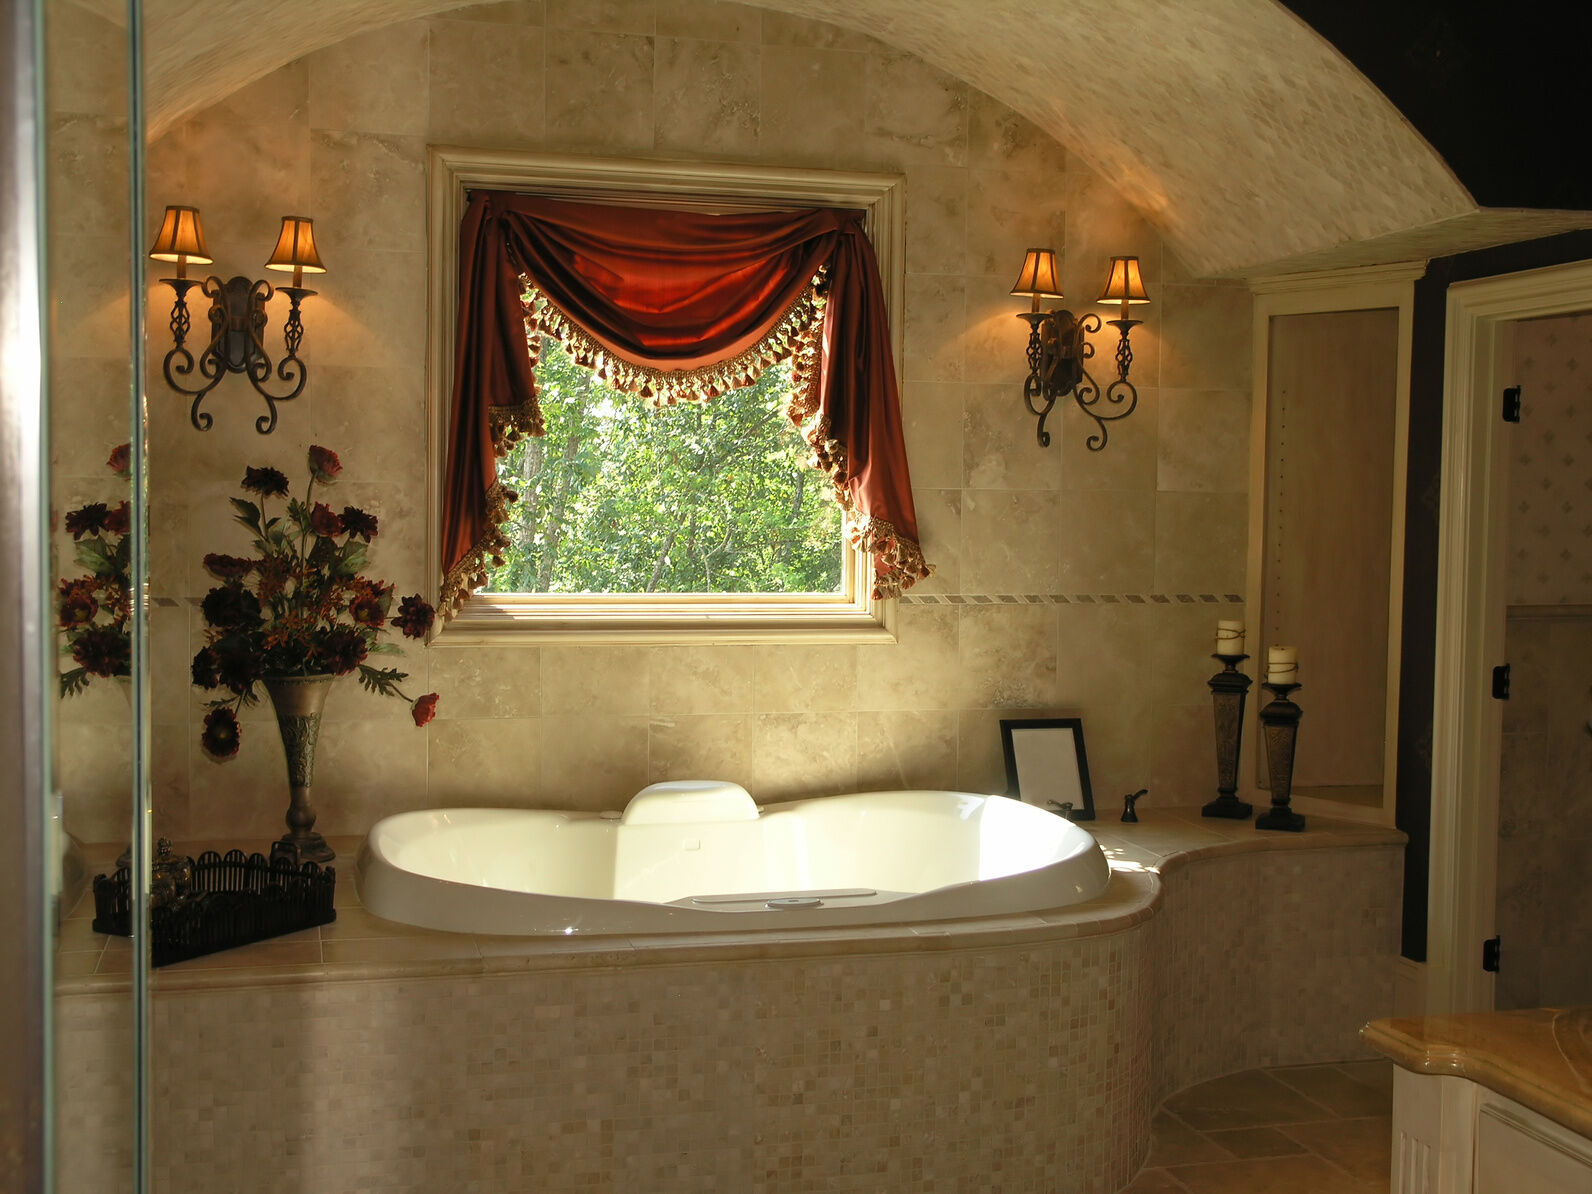 How to decorate a garden tub ebay for How to decorate a garden tub bathroom